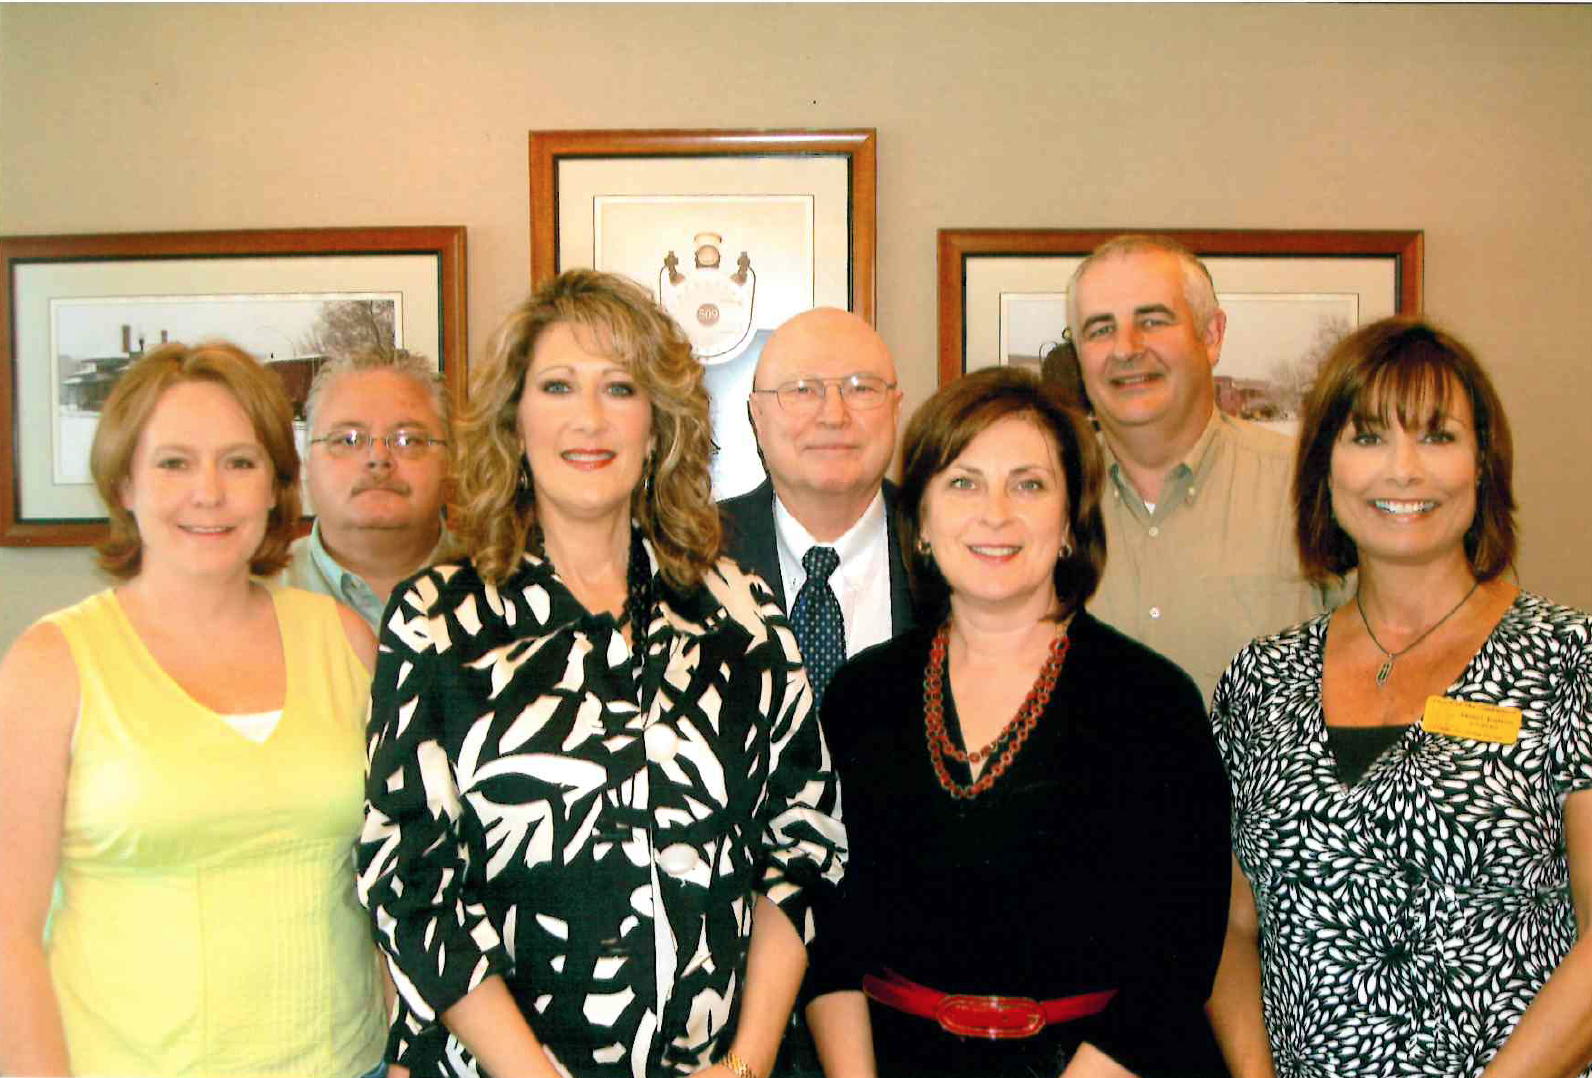 Front row: Carrie Hutchinson, Kassandra Newman, Jill Horner, and Nancy Dalton. Back row: Pastor Eddie Turner, Rev. Jim Rogers, and Dr. Mark Loftis.